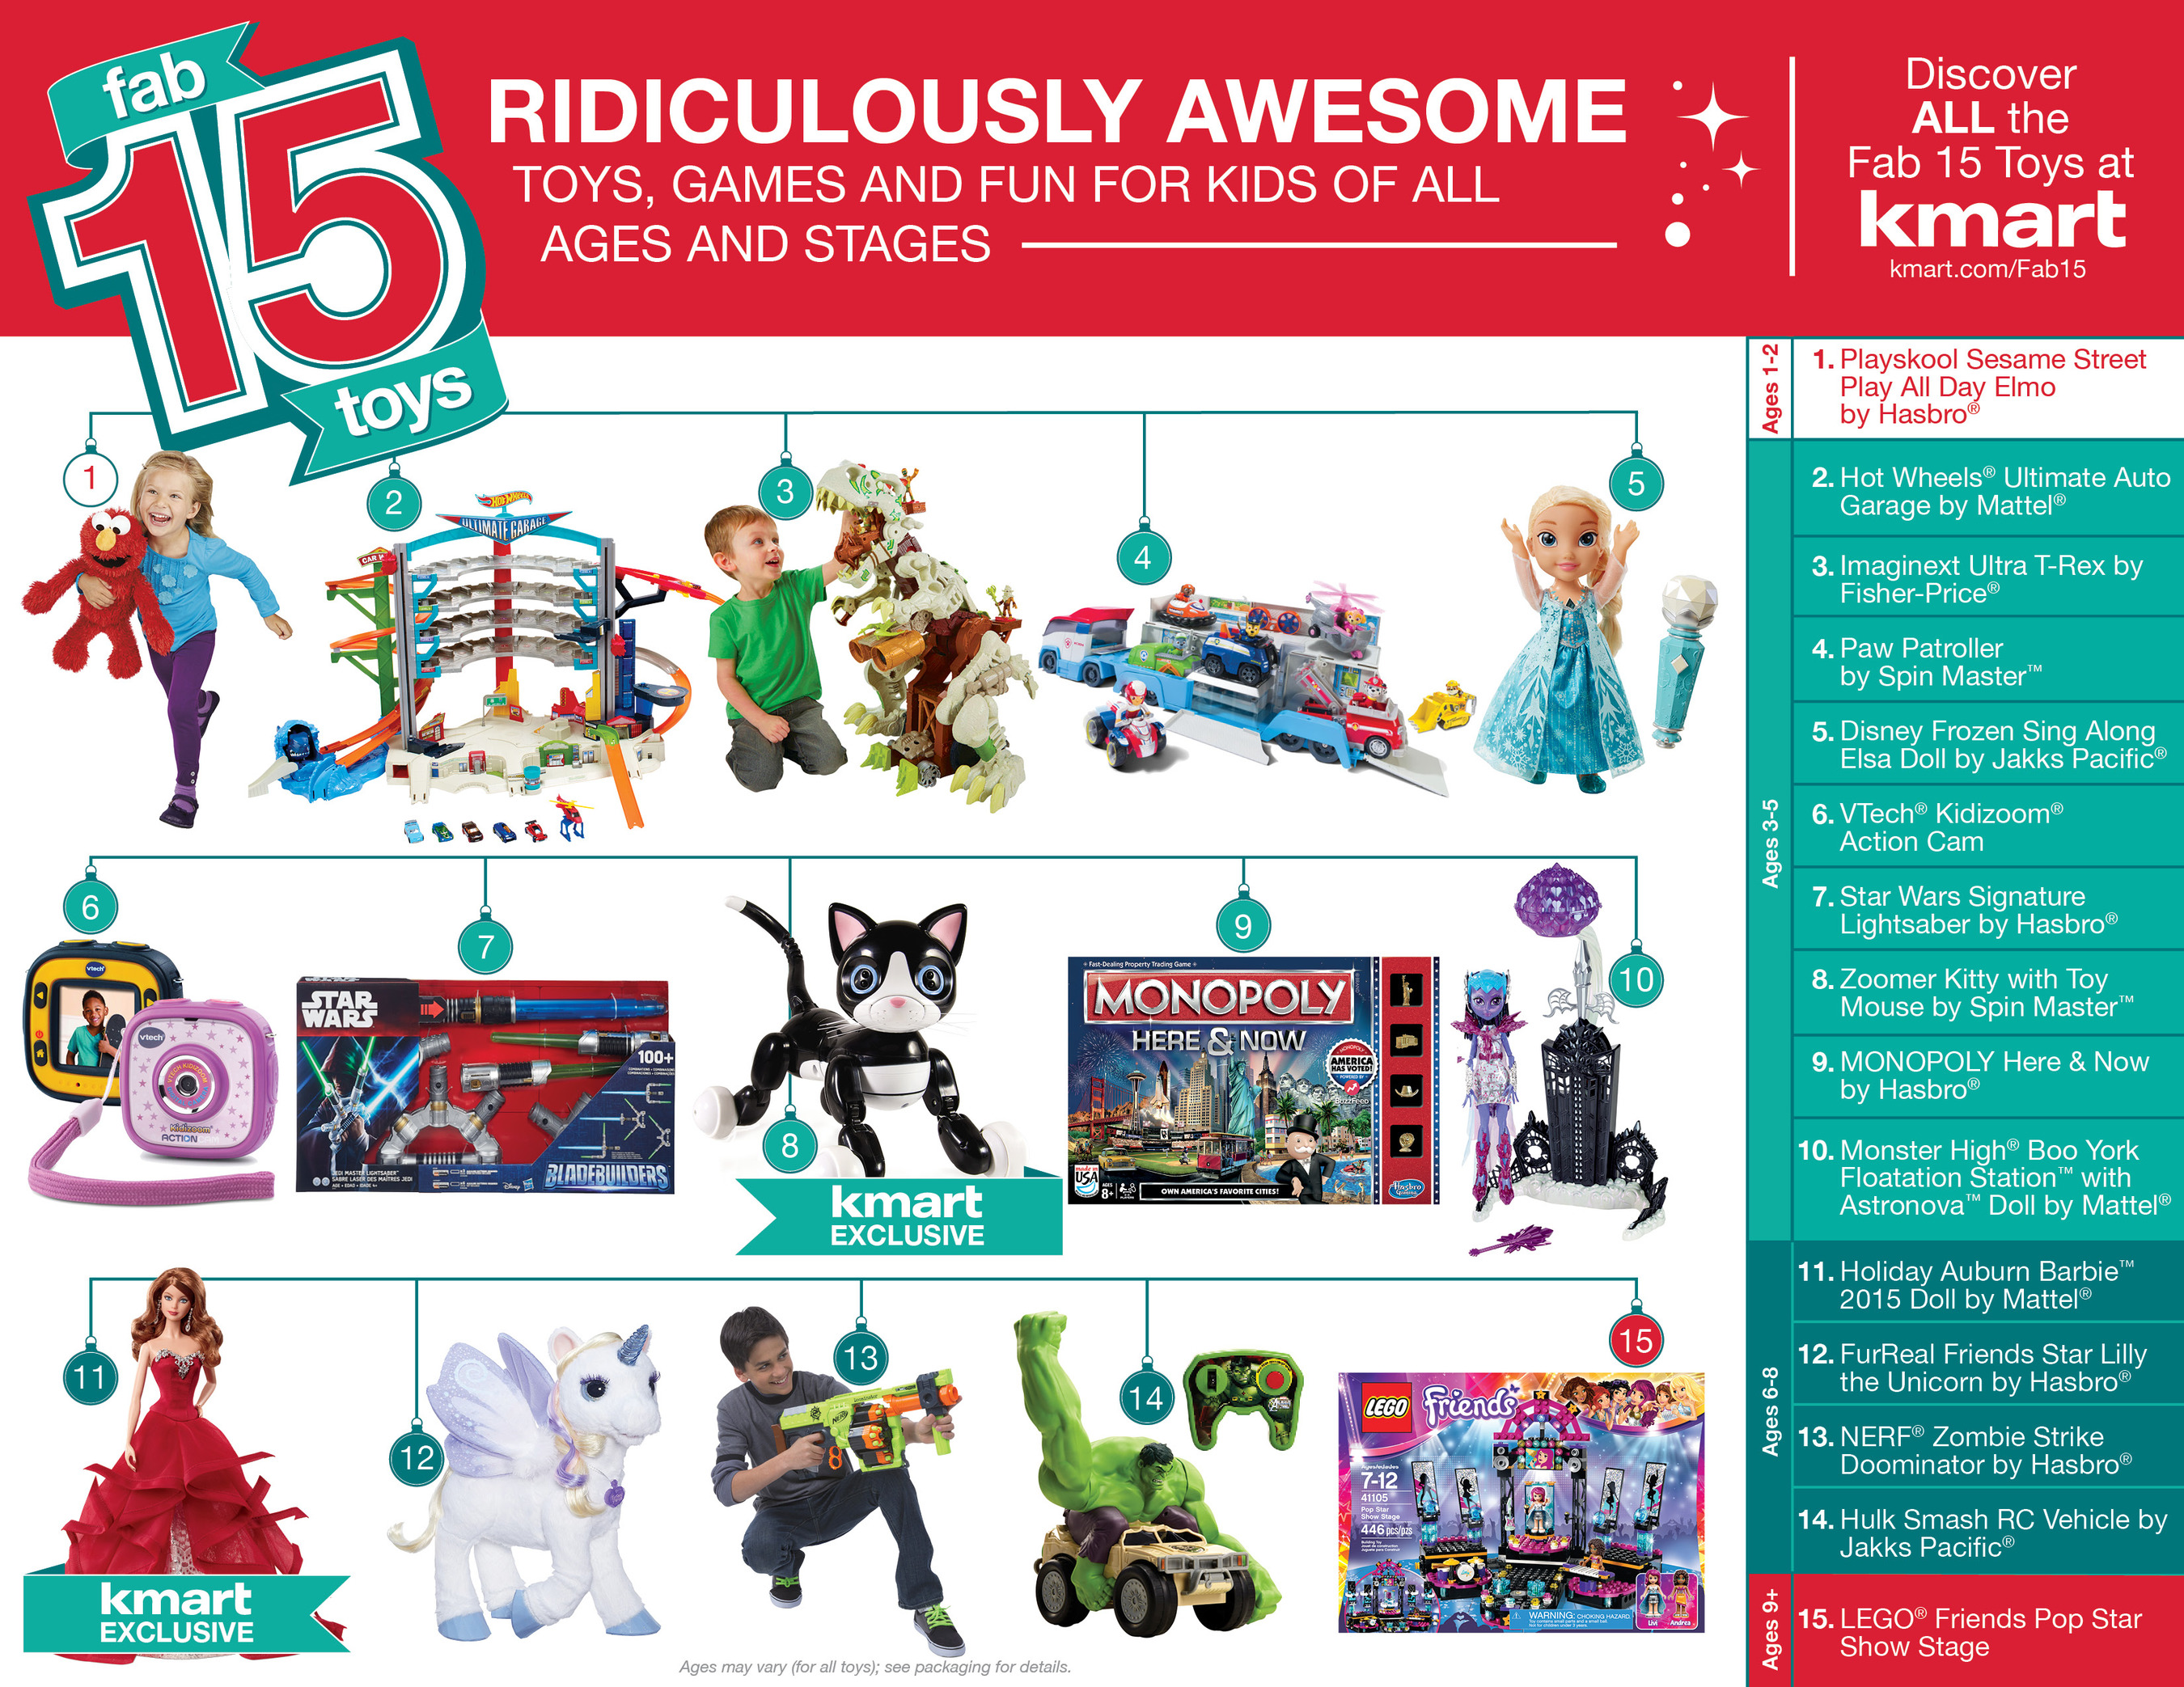 Toys At Kmart : Kmart reveals fab toys list creates first ever kid